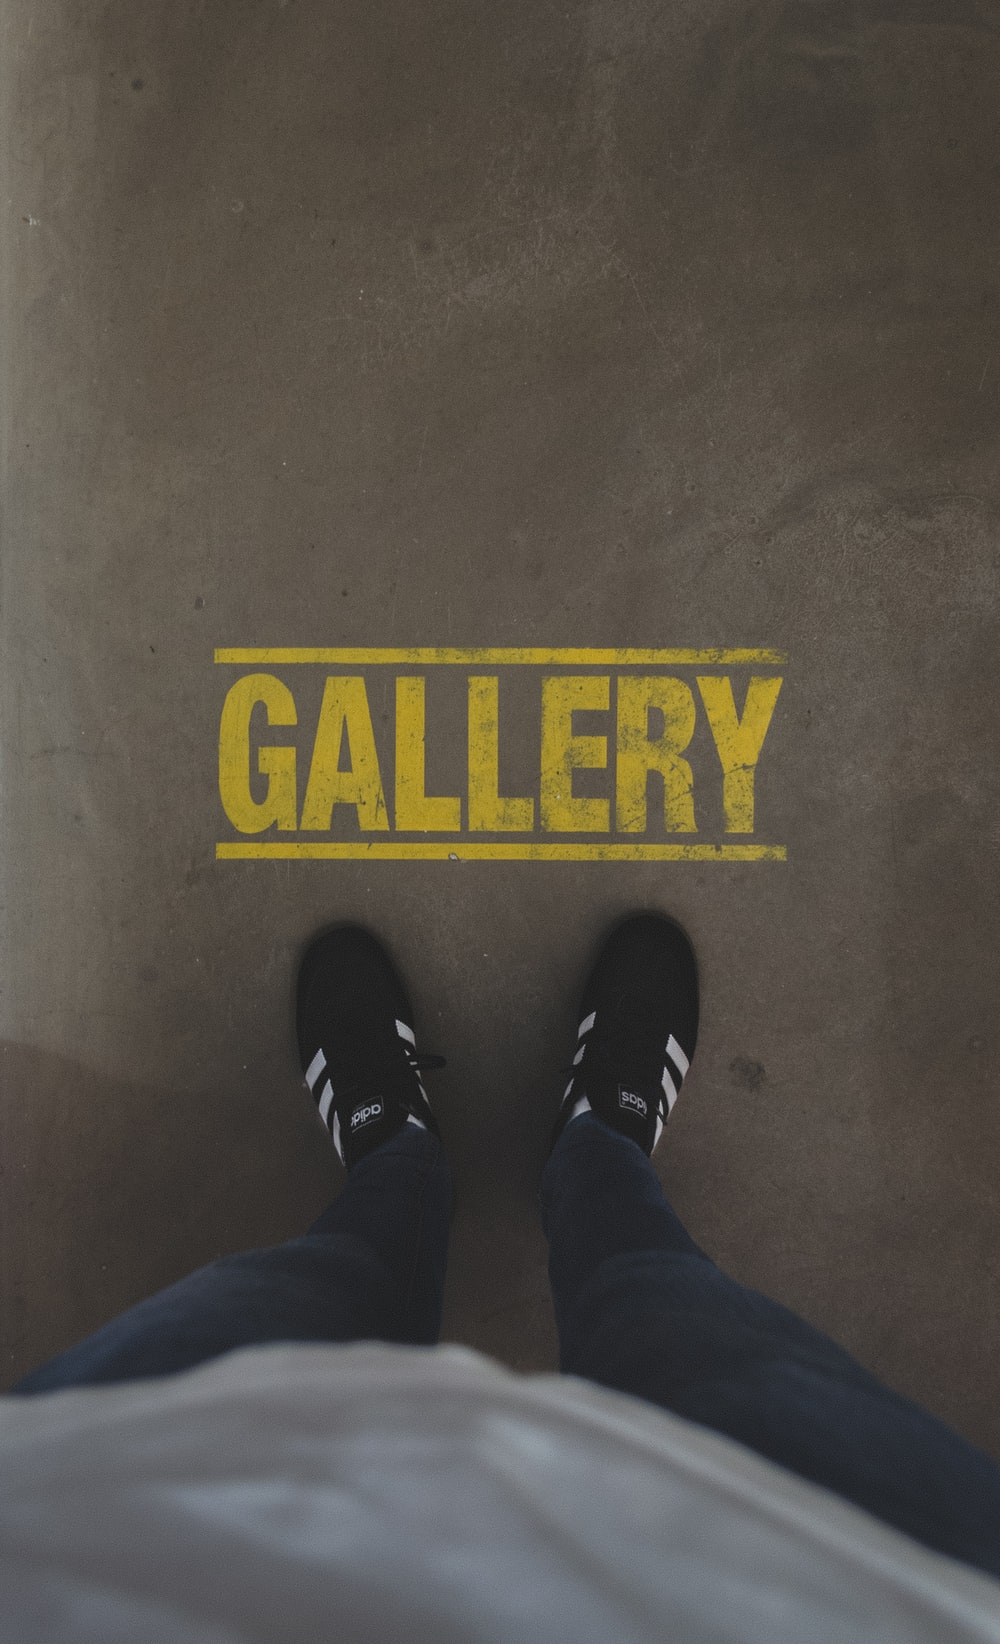 person standing infront of Gallery sign